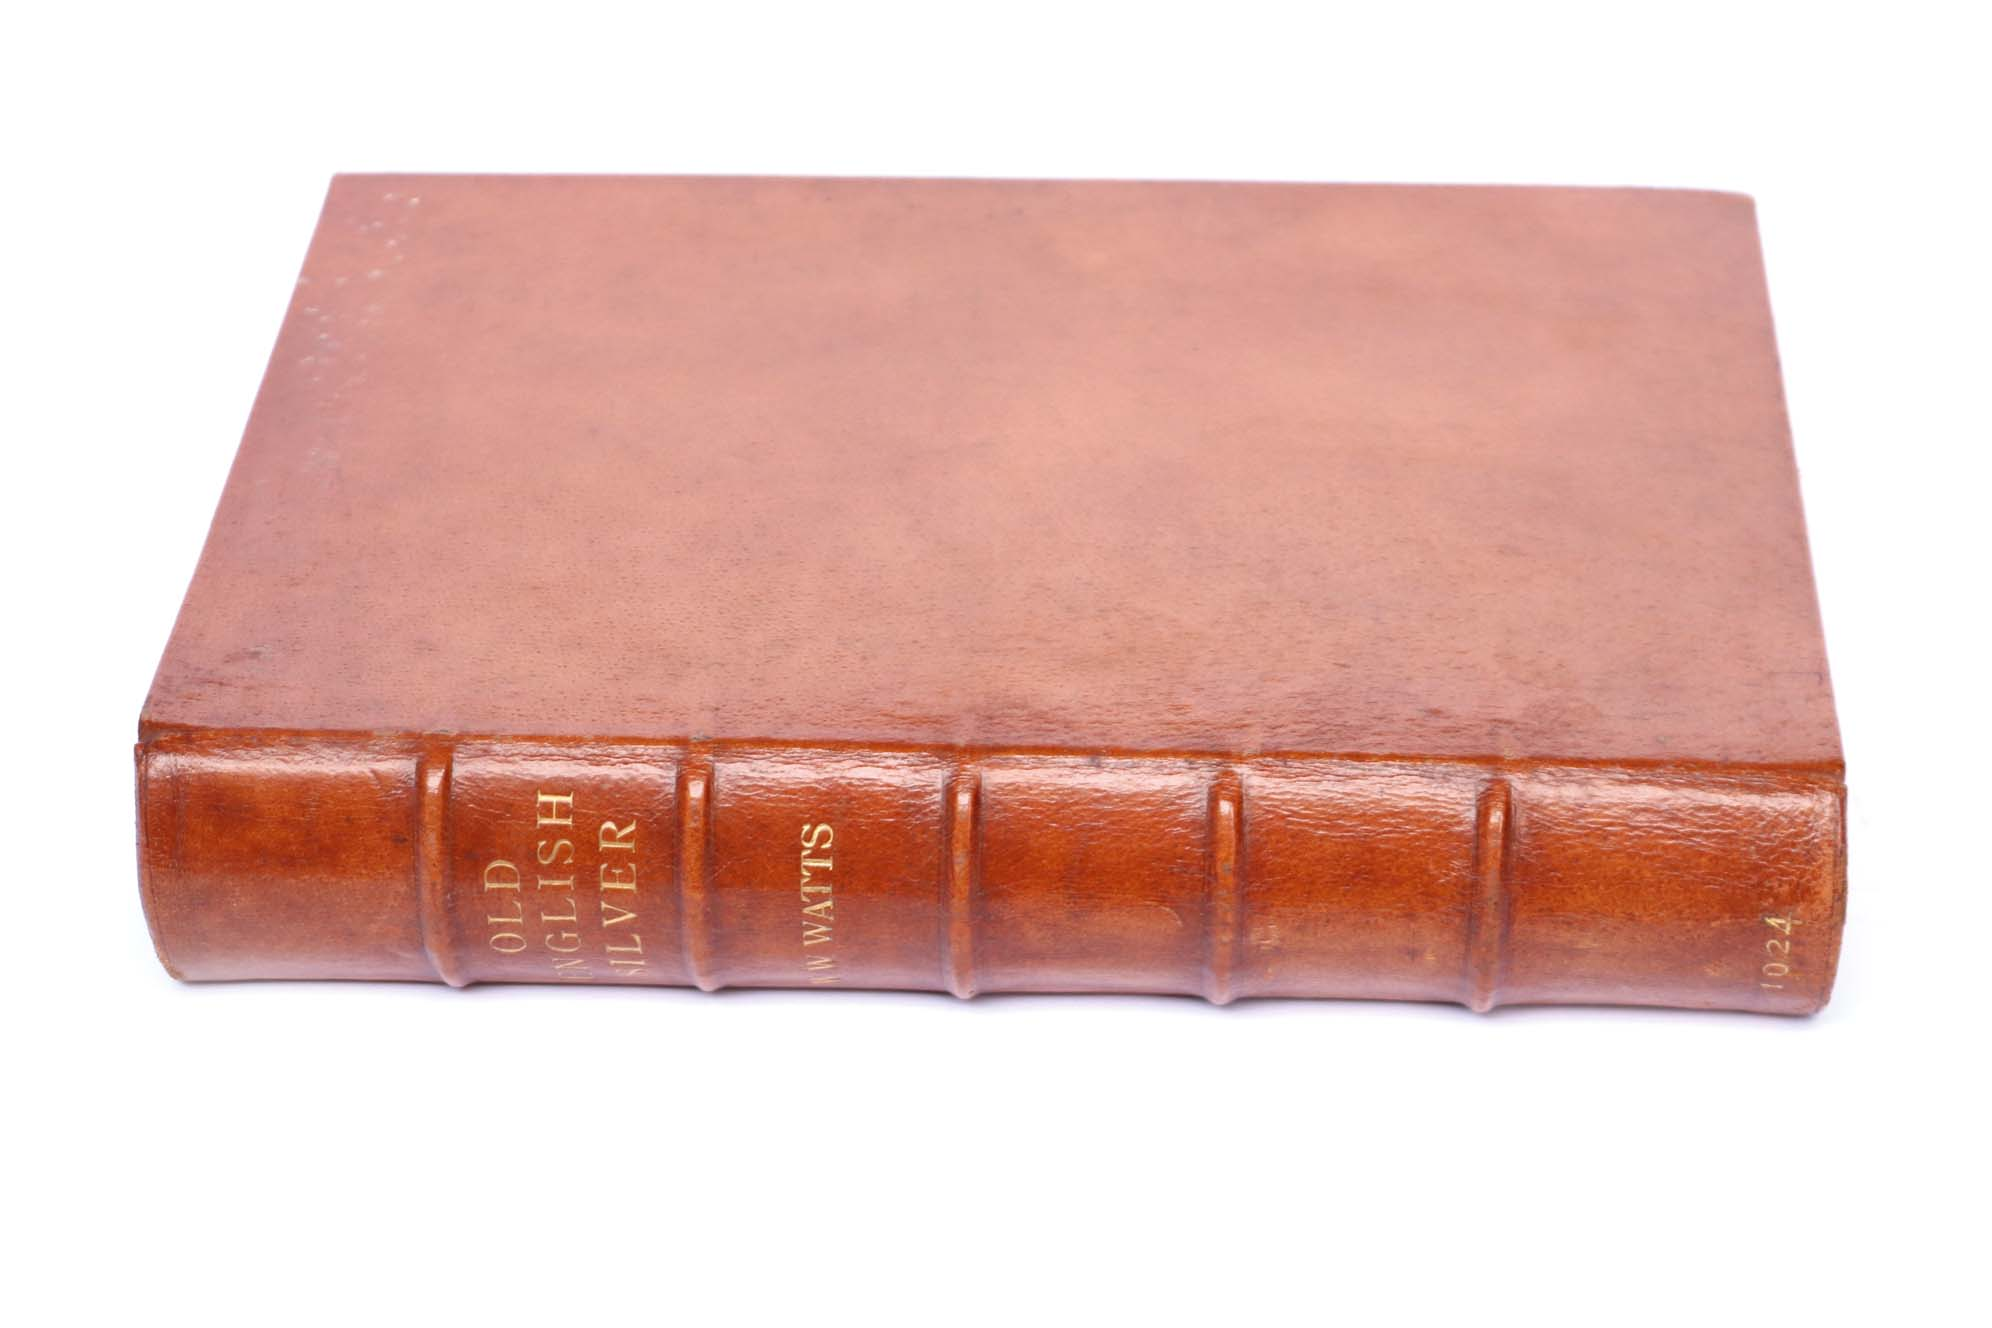 Lot 7 - Watts, W.W: Old English Silver, leather bound, Earnest Penn 1924